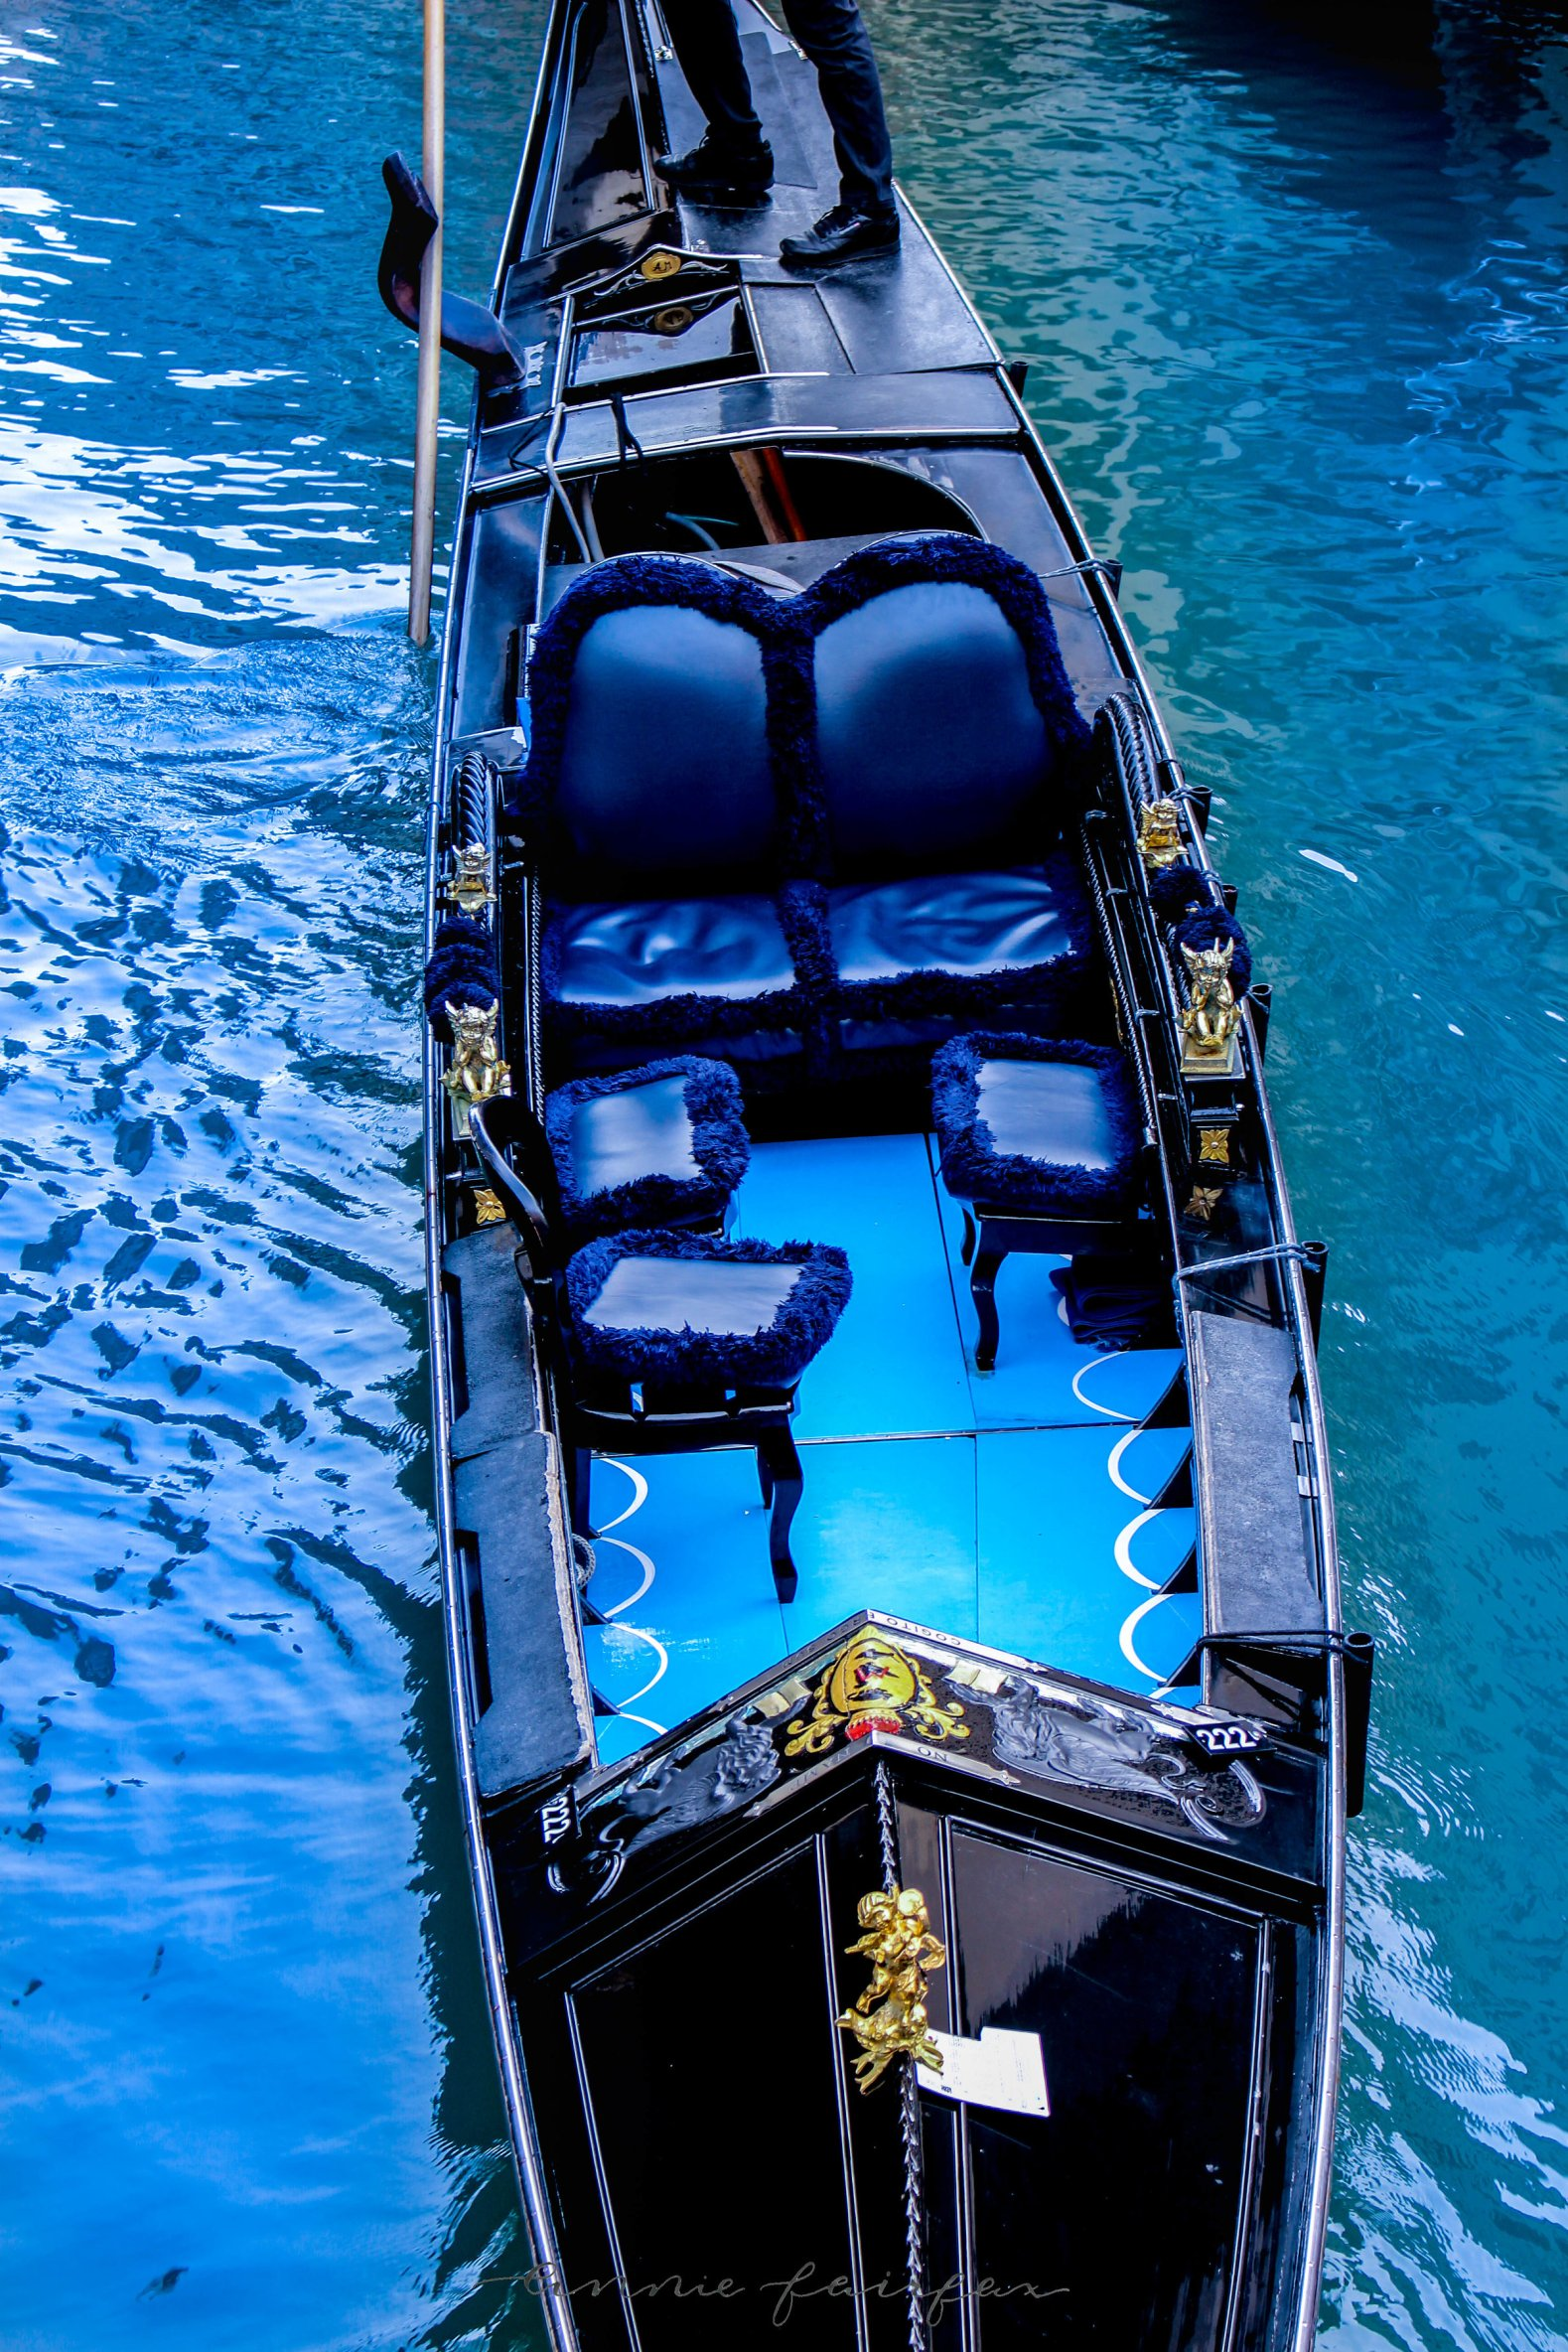 blue and black gondola Venice Italy